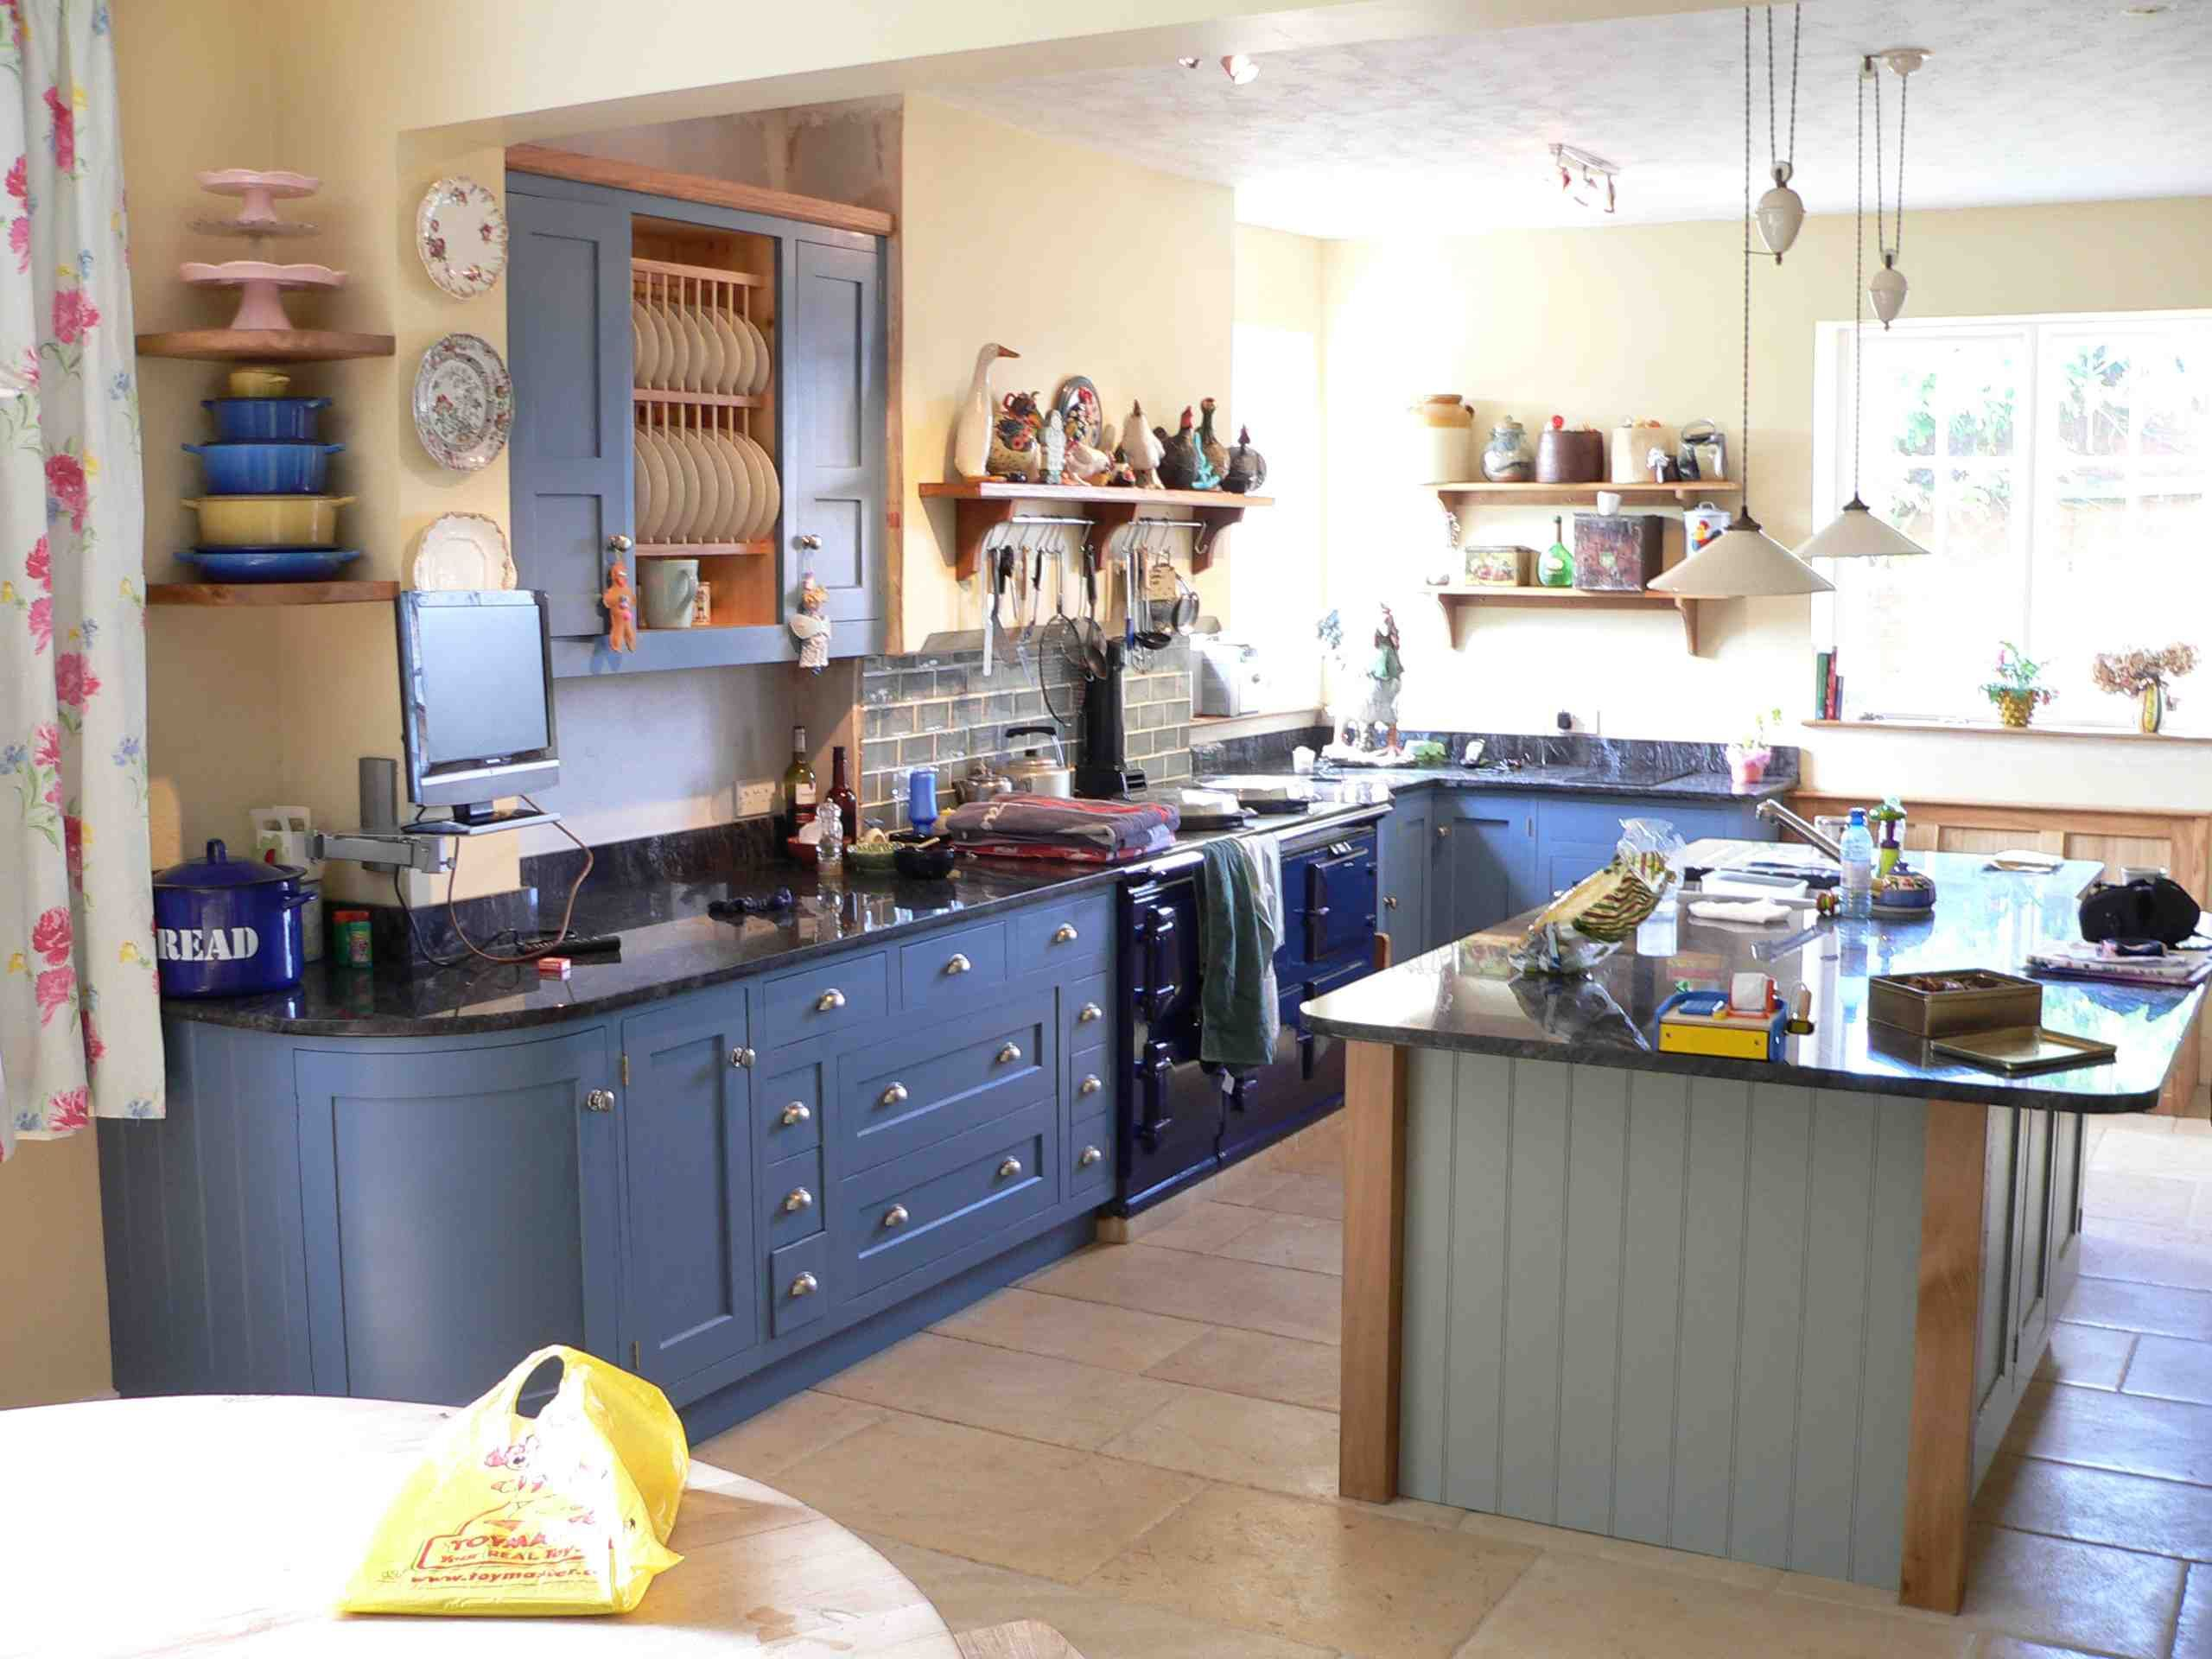 Bespoke Kitchen Design Painting green and blue kitchen | bespoke kitchen painted in blue and green